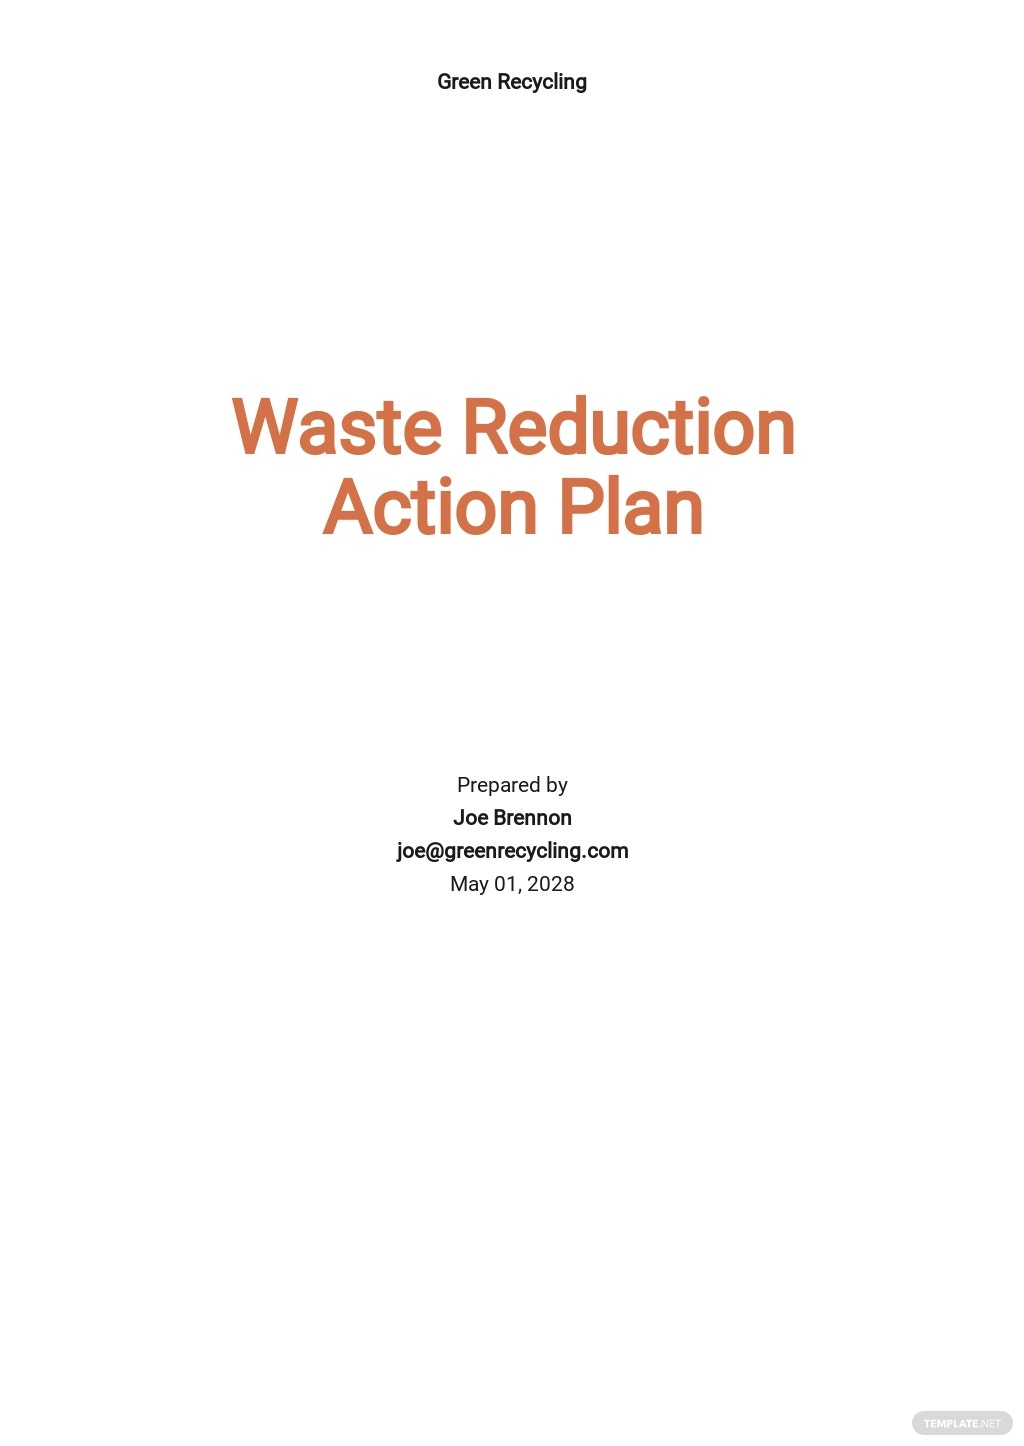 Waste Reduction Action Plan Template